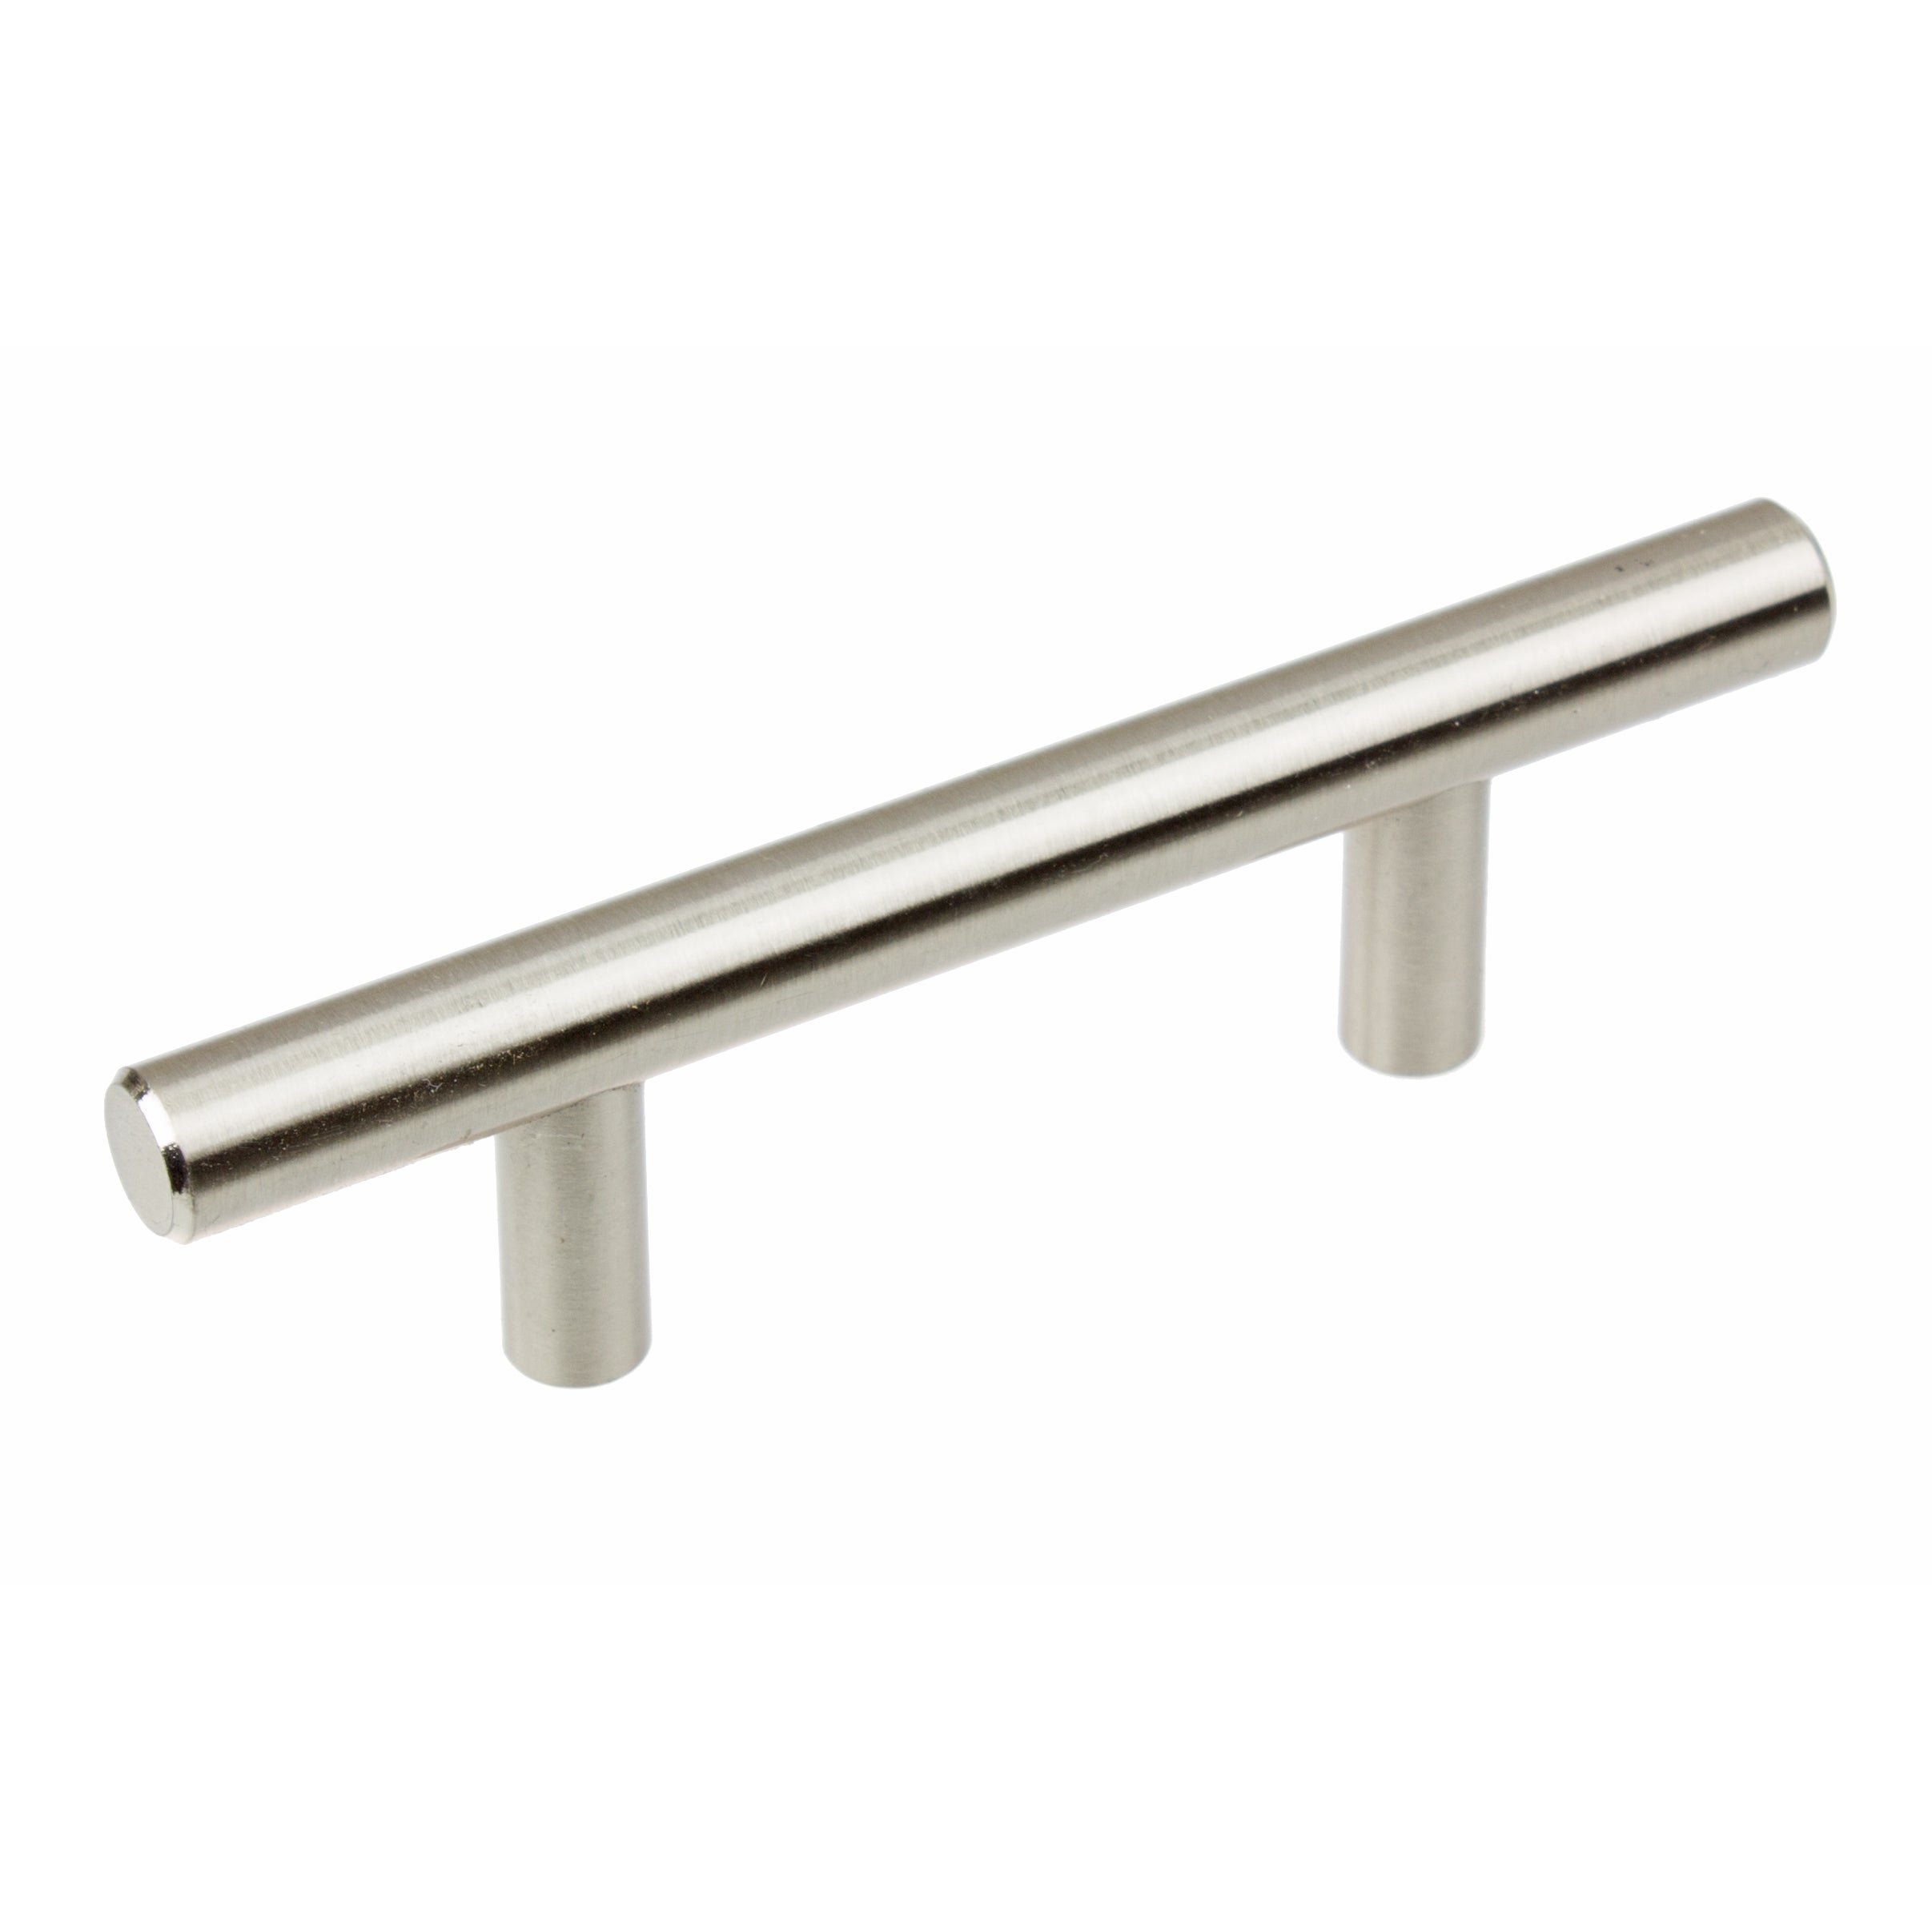 Shop GlideRite 5-inch Solid Stainless Steel Finish 2.5 inch CC ...